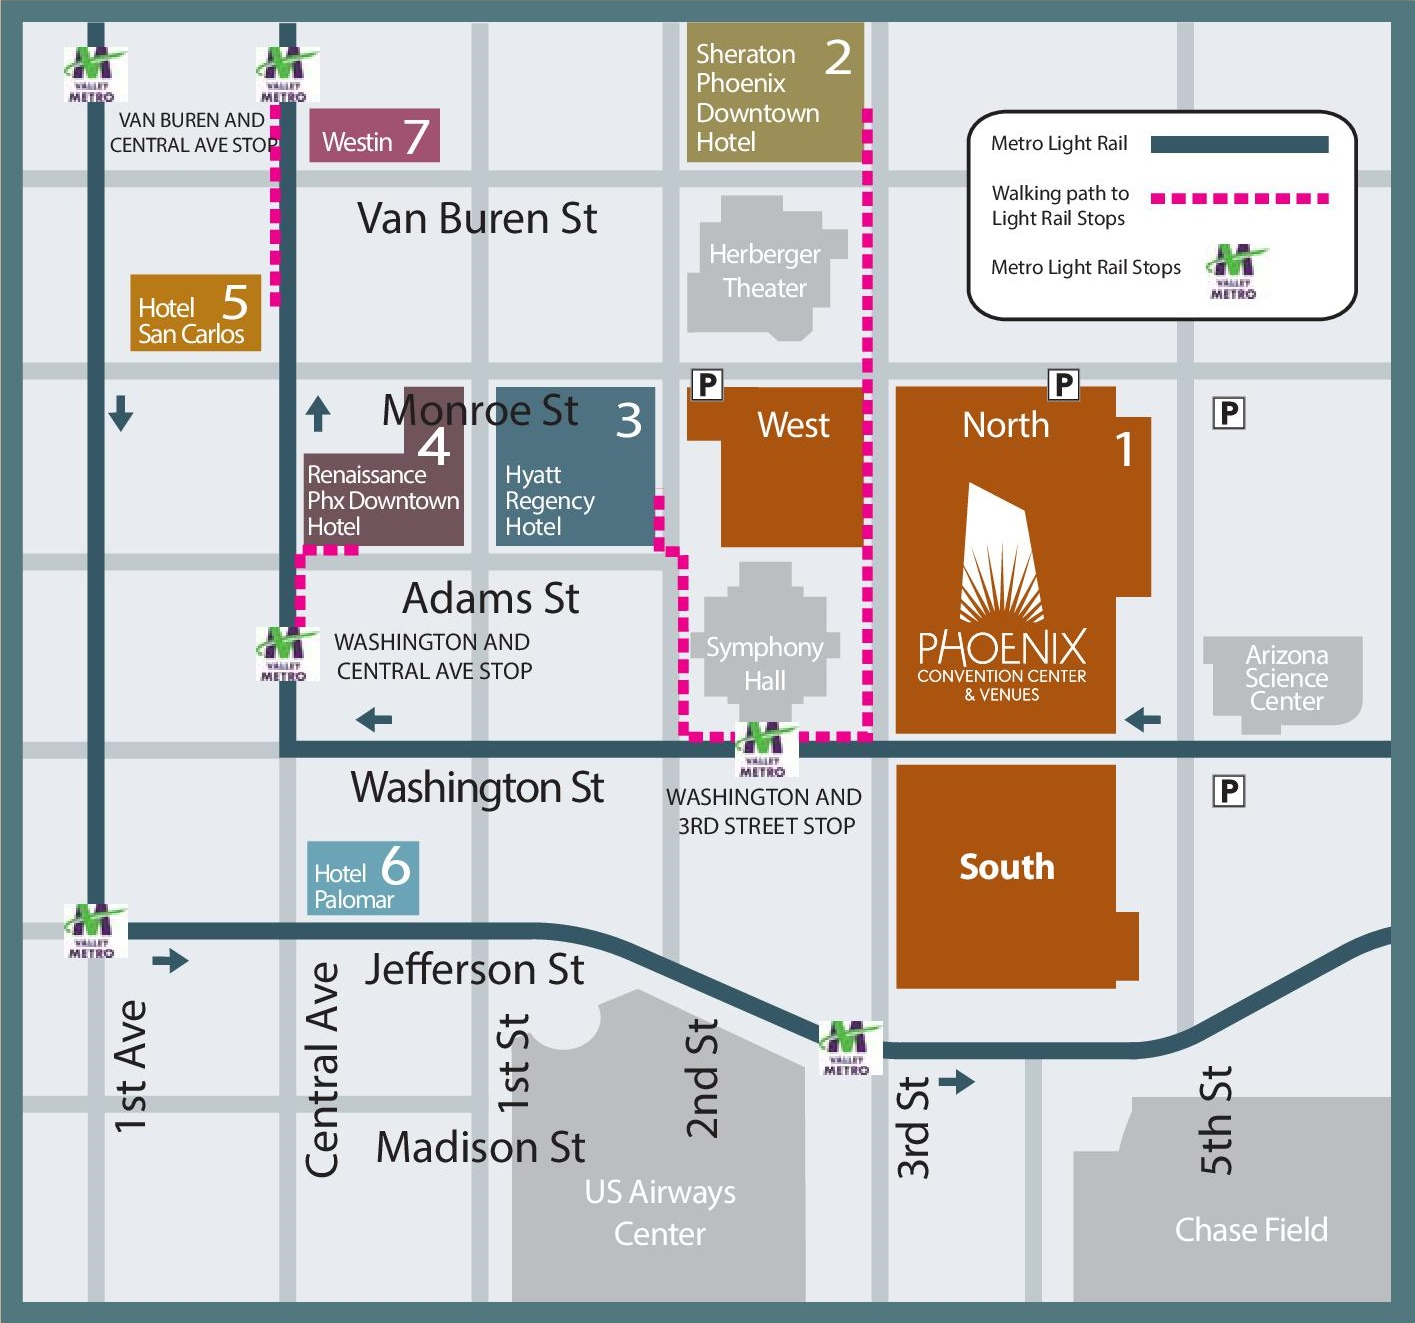 Downtown Phoenix hotel map on